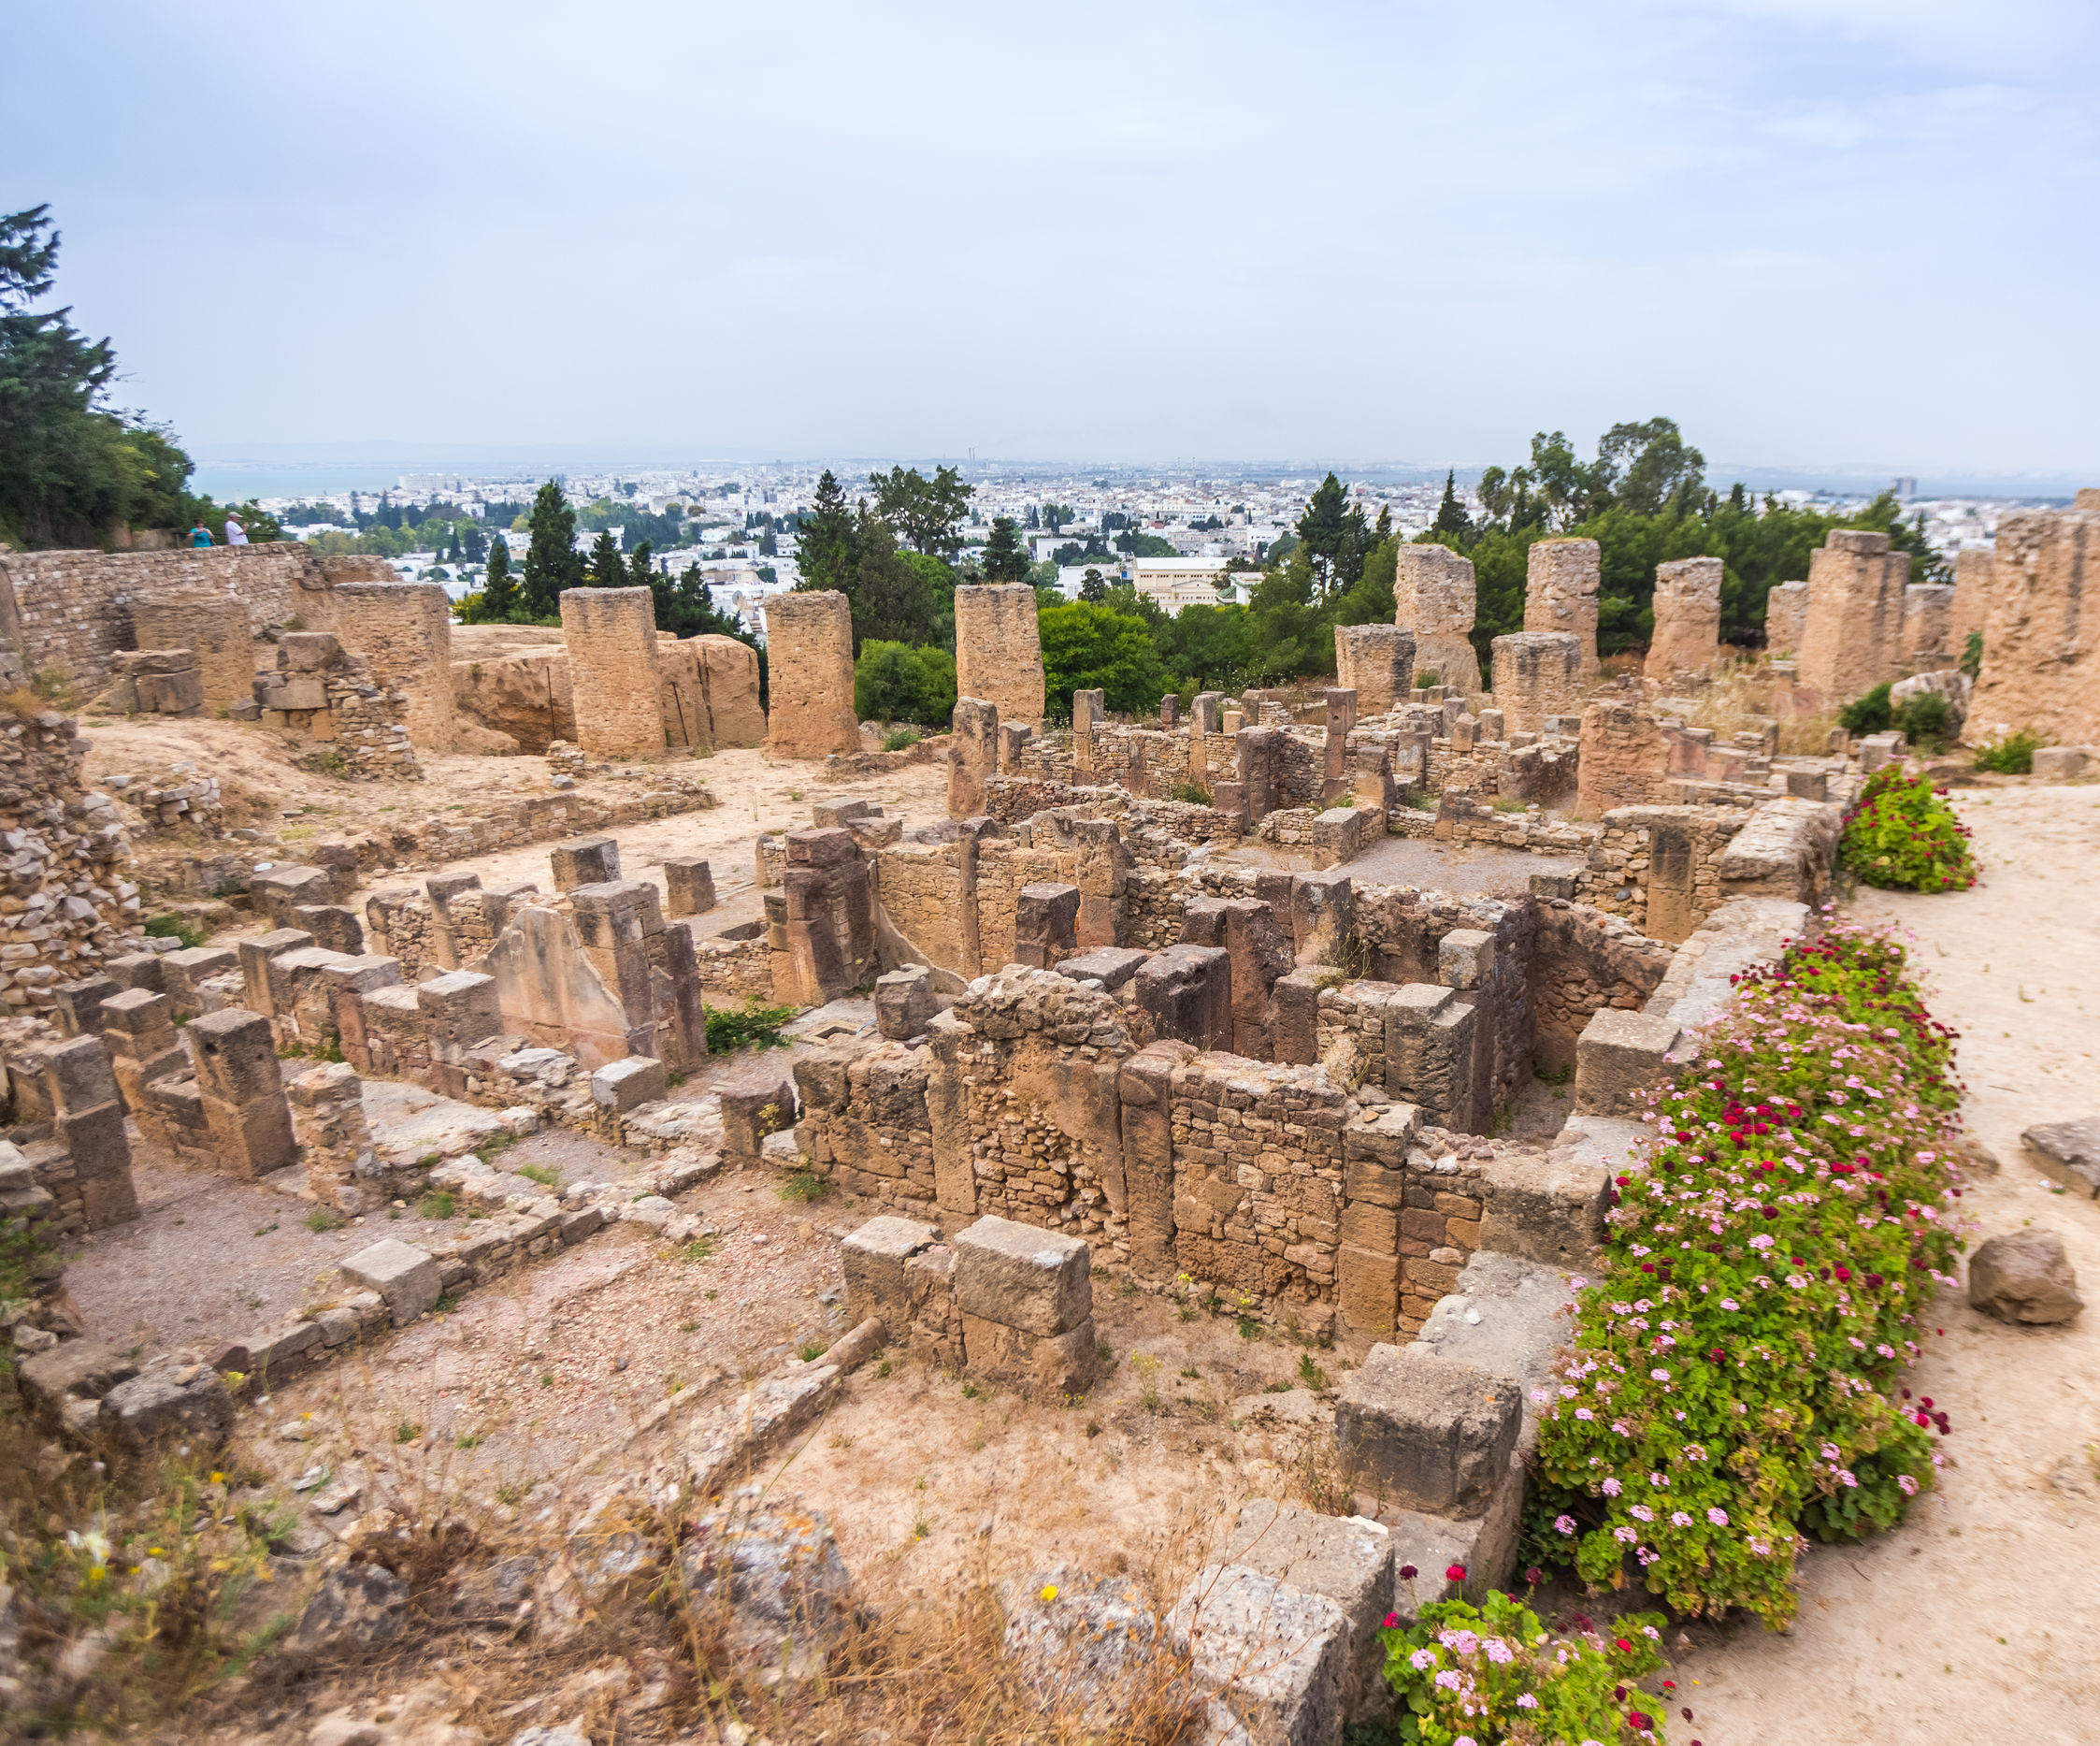 42315972 - tunisia. ancient carthage. ancient ruins in district of punic byrsa